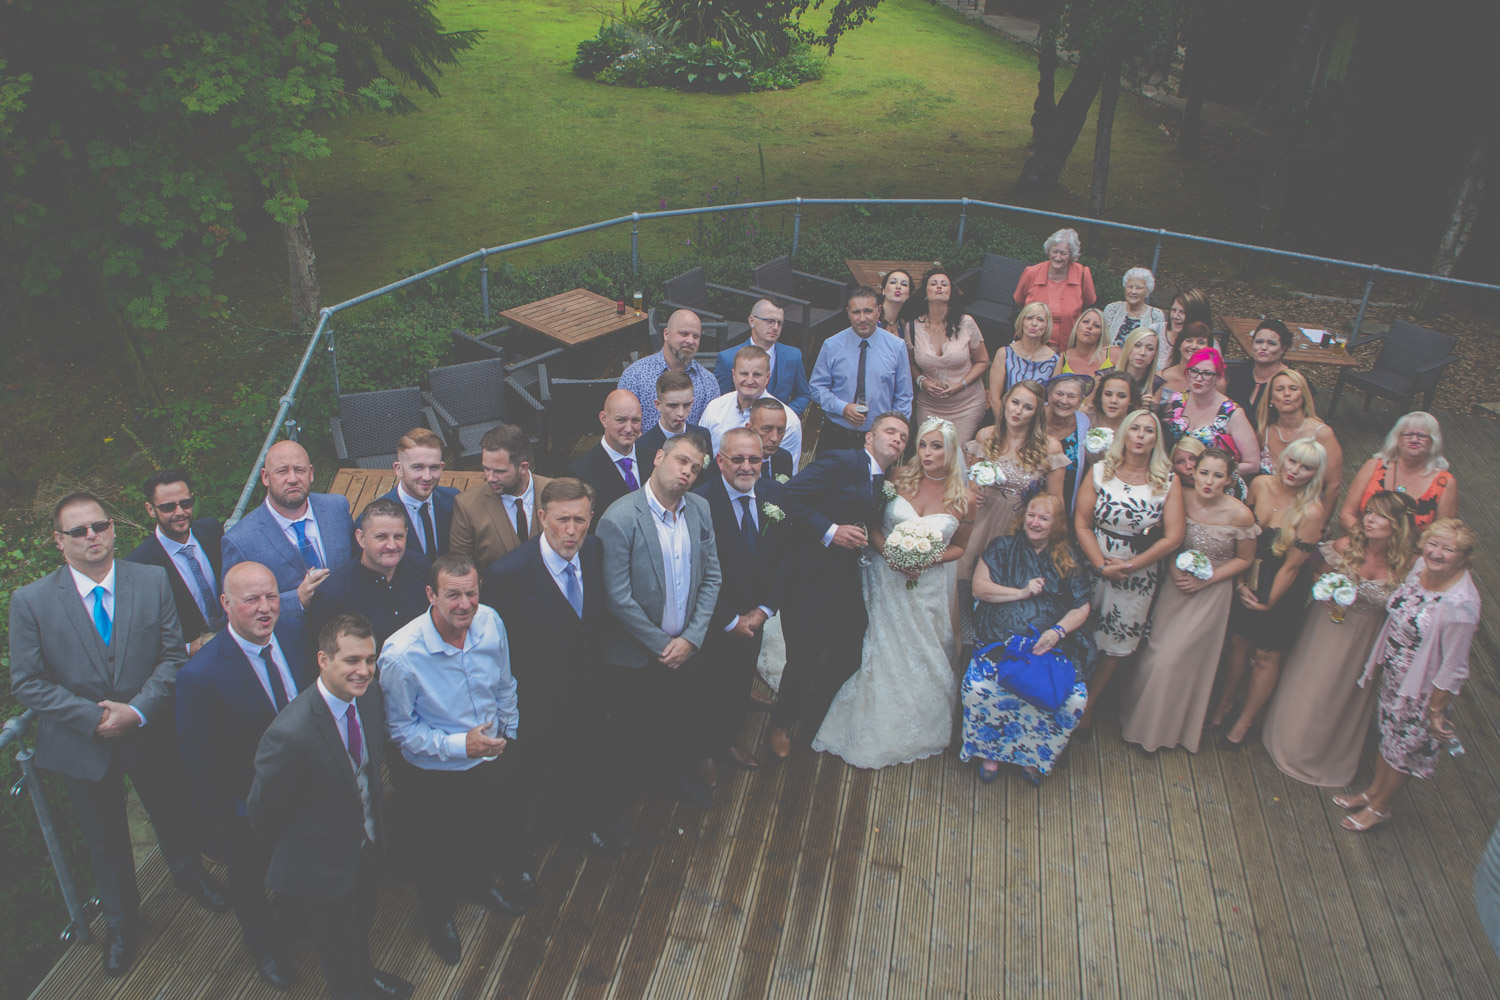 bradford_wedding_photographer_otley_chevin_001-2.jpg